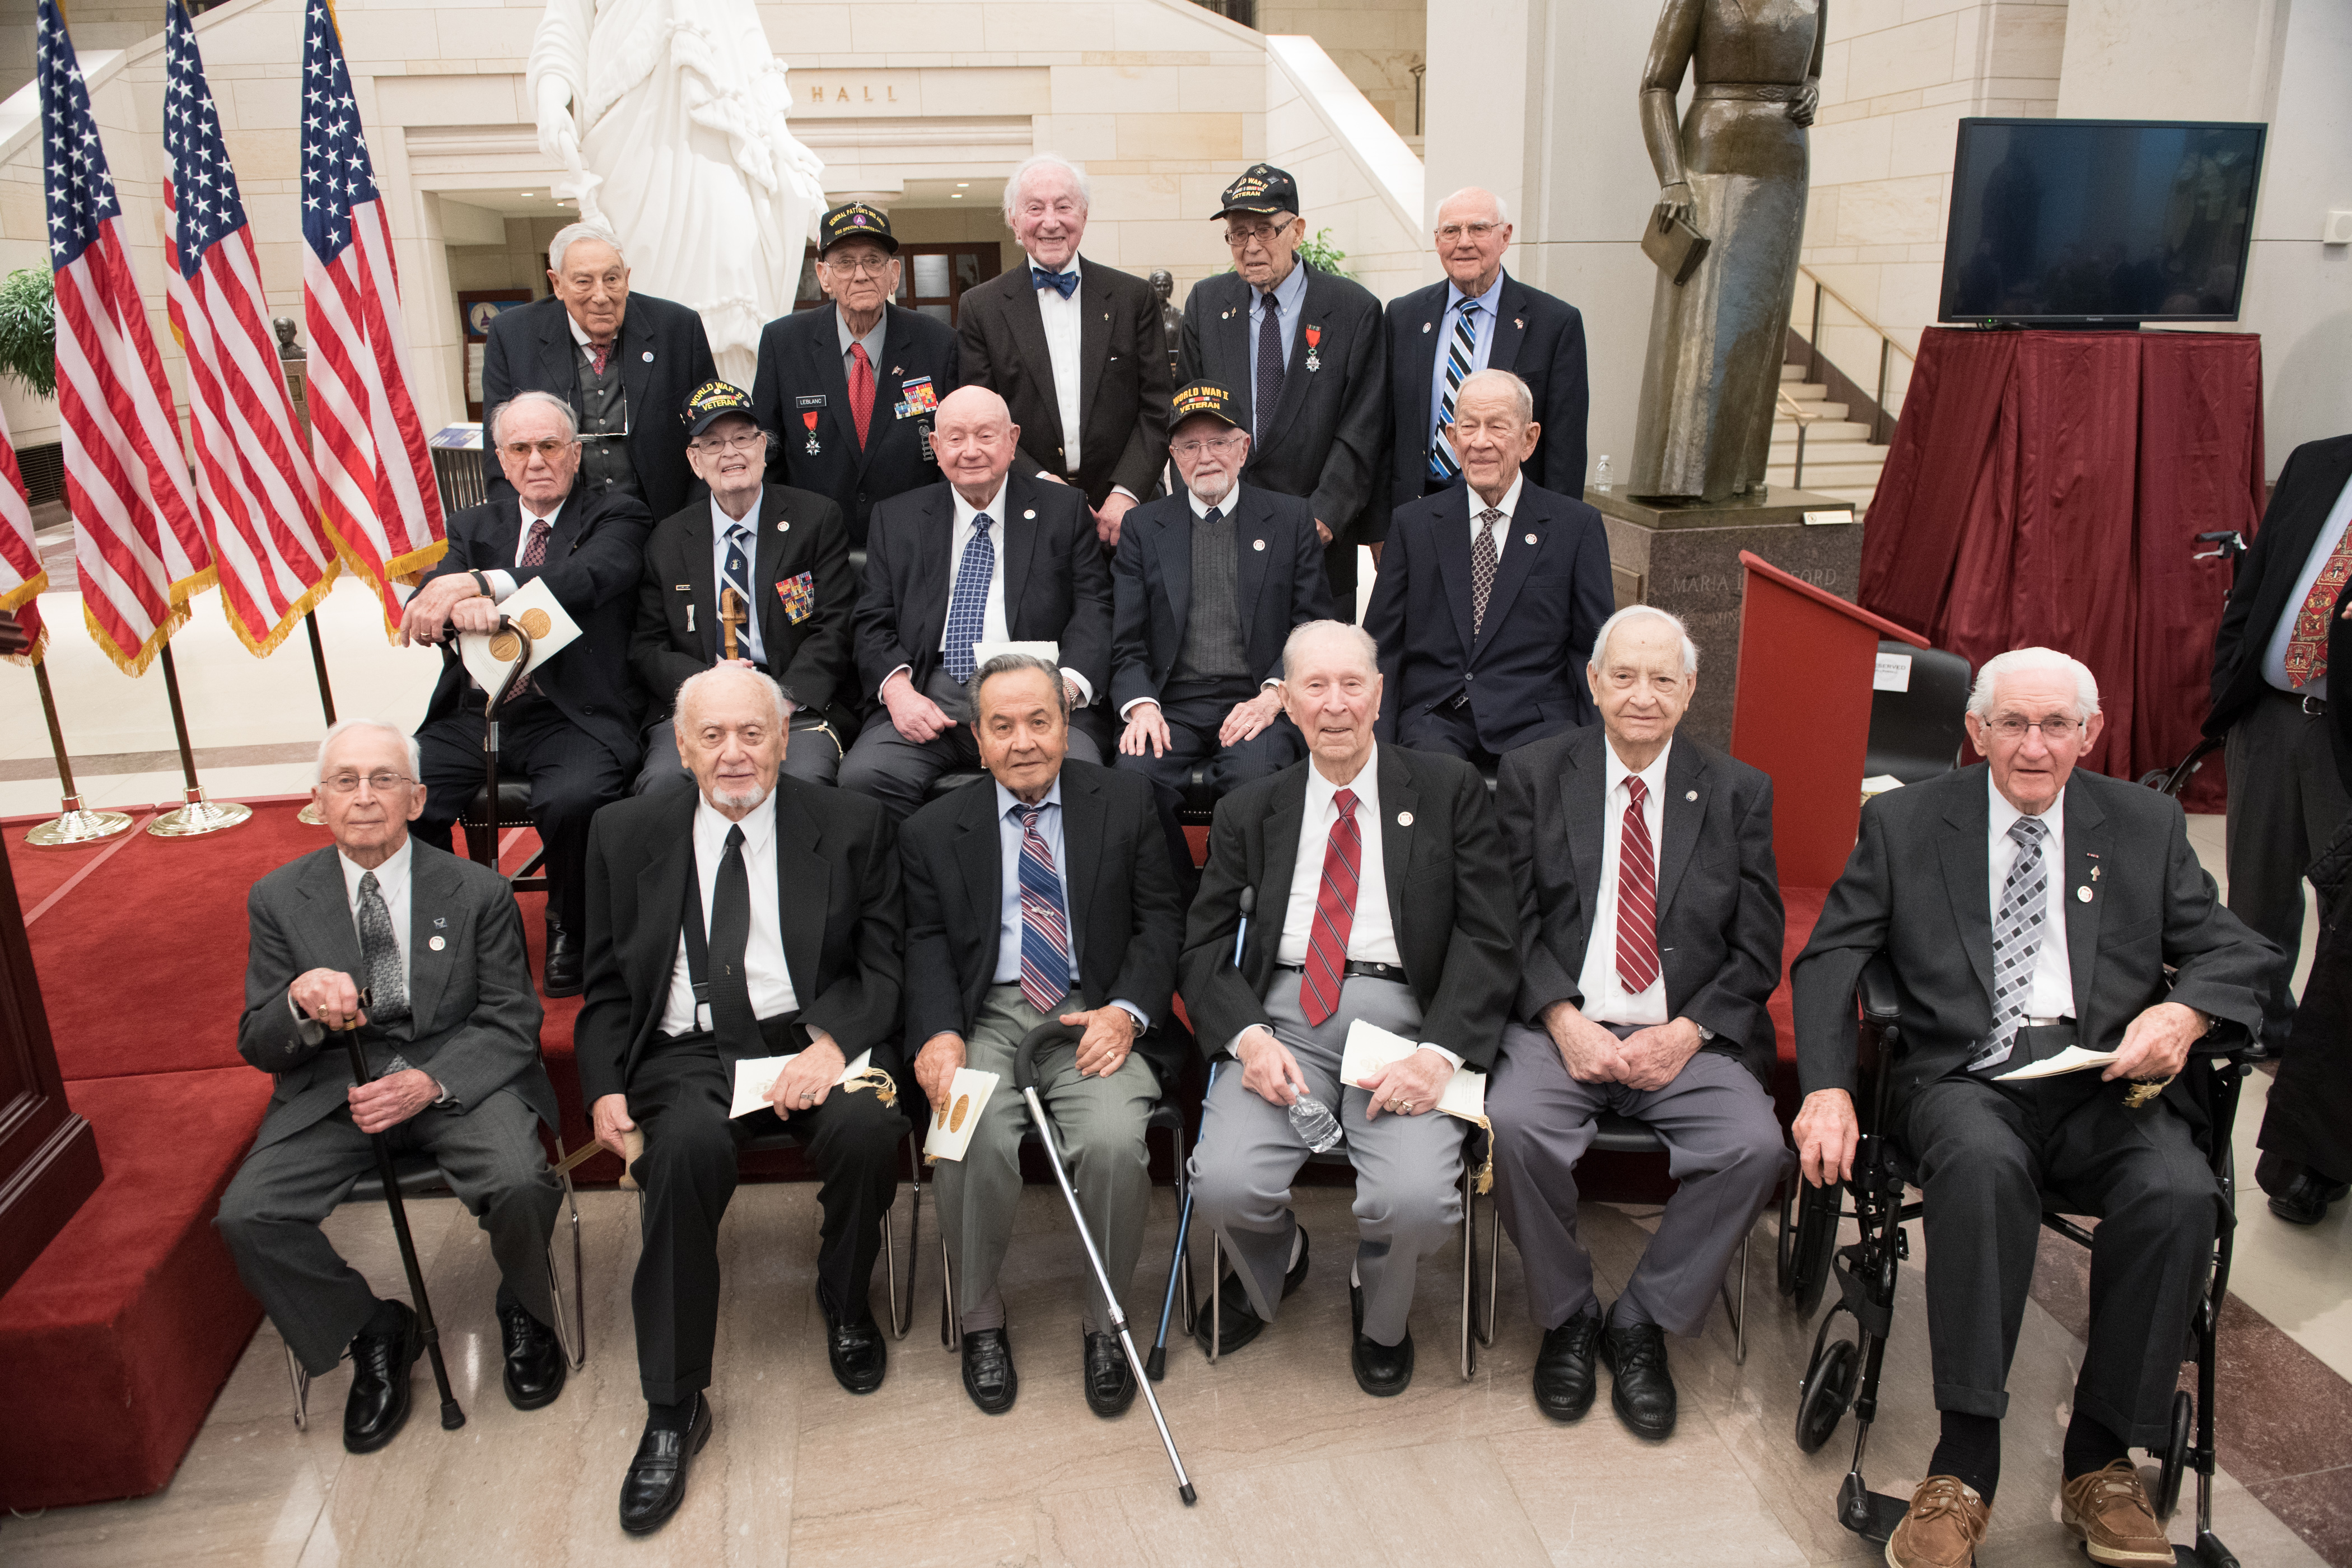 OSS veterans at the Congressional Gold Medal ceremony